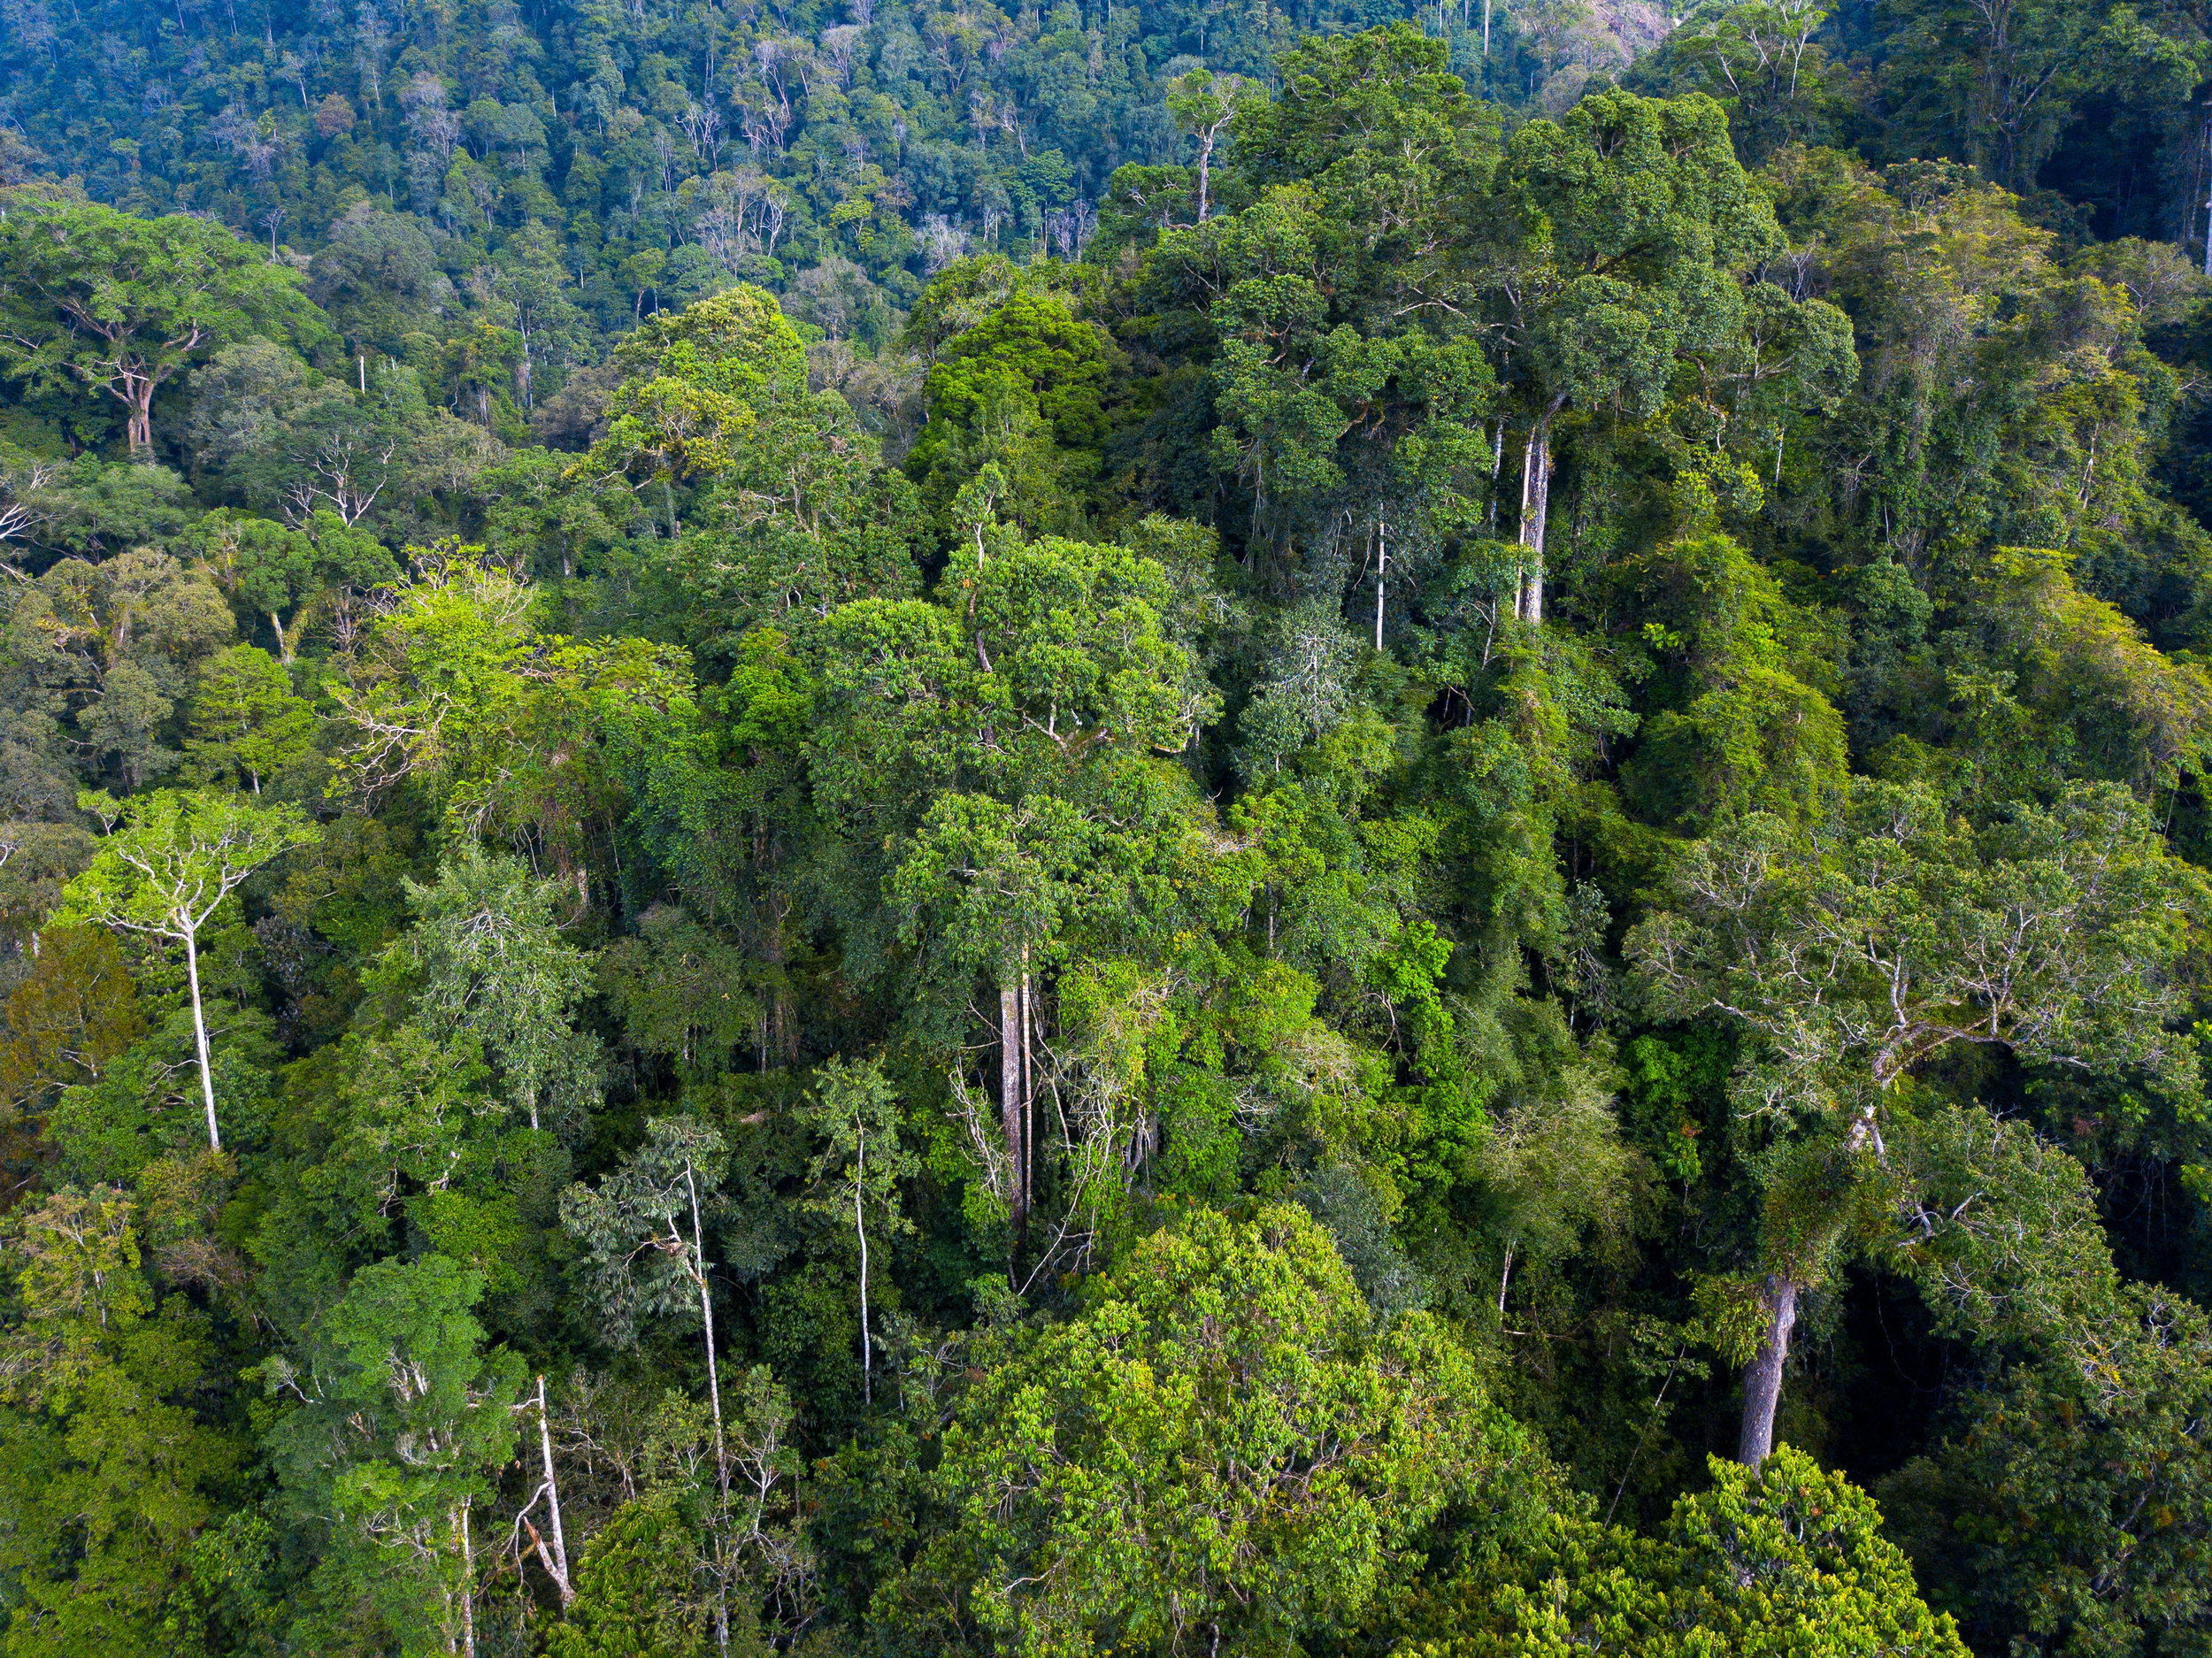 An aerial view of Gunung Leuser National Park in Aceh, Sumatra, Indonesia.